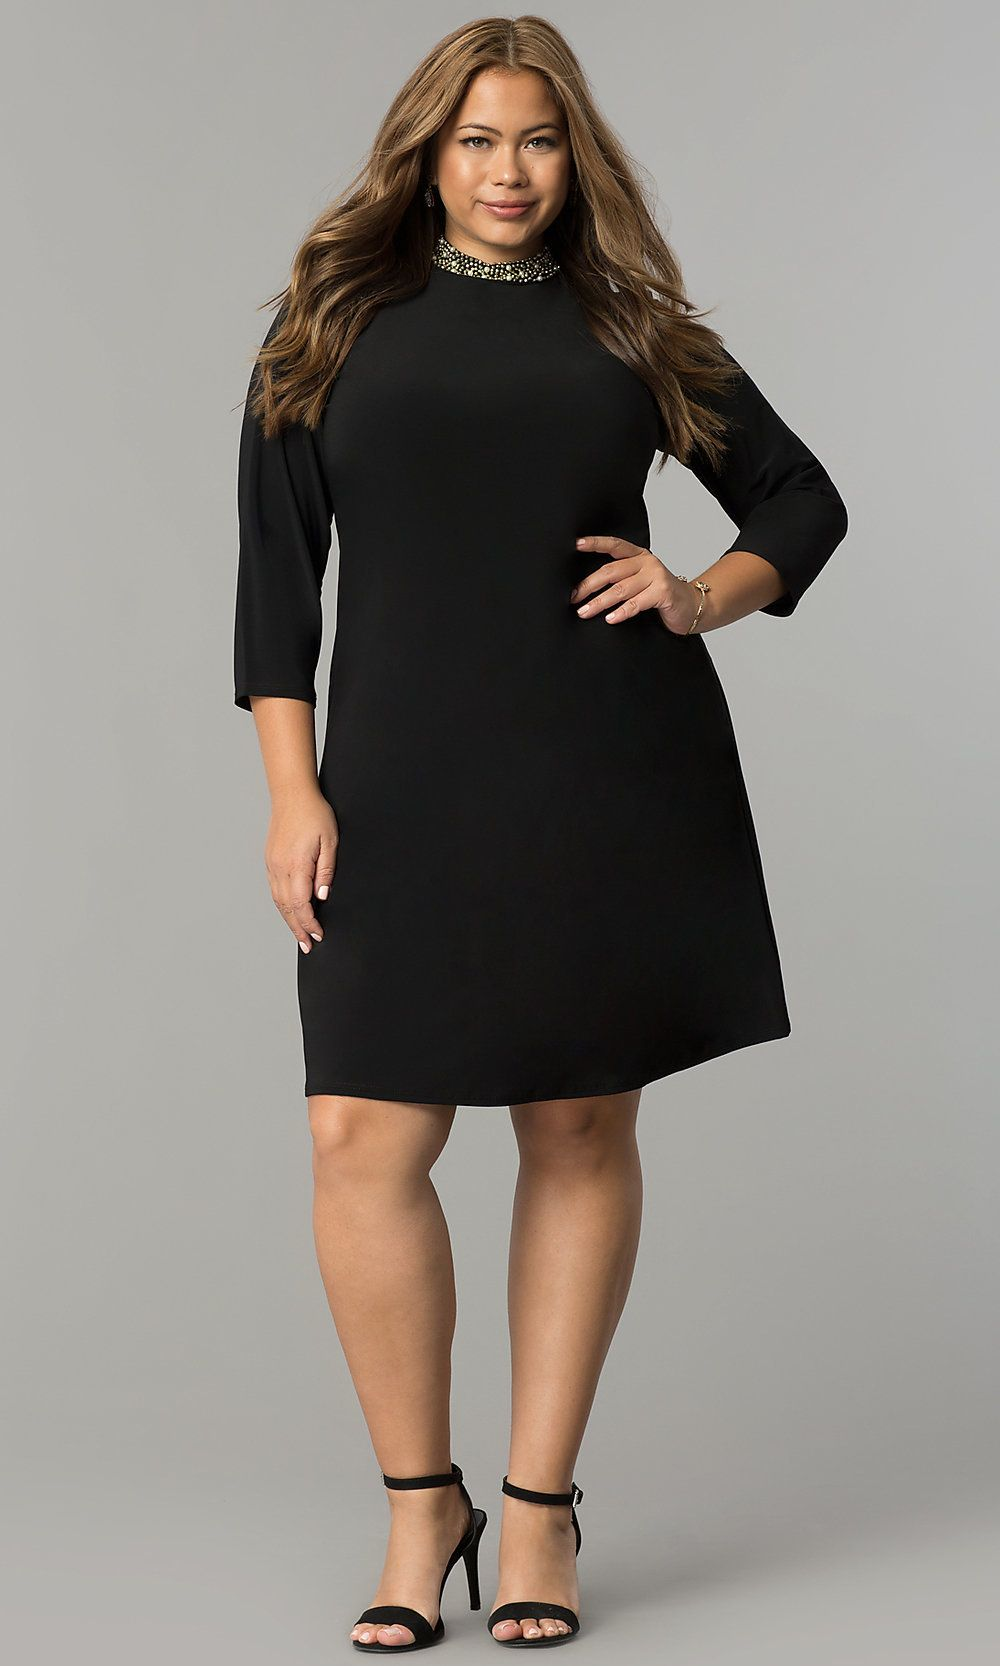 Short High-Neck Black Holiday Plus-Size Dress in 2019 ...